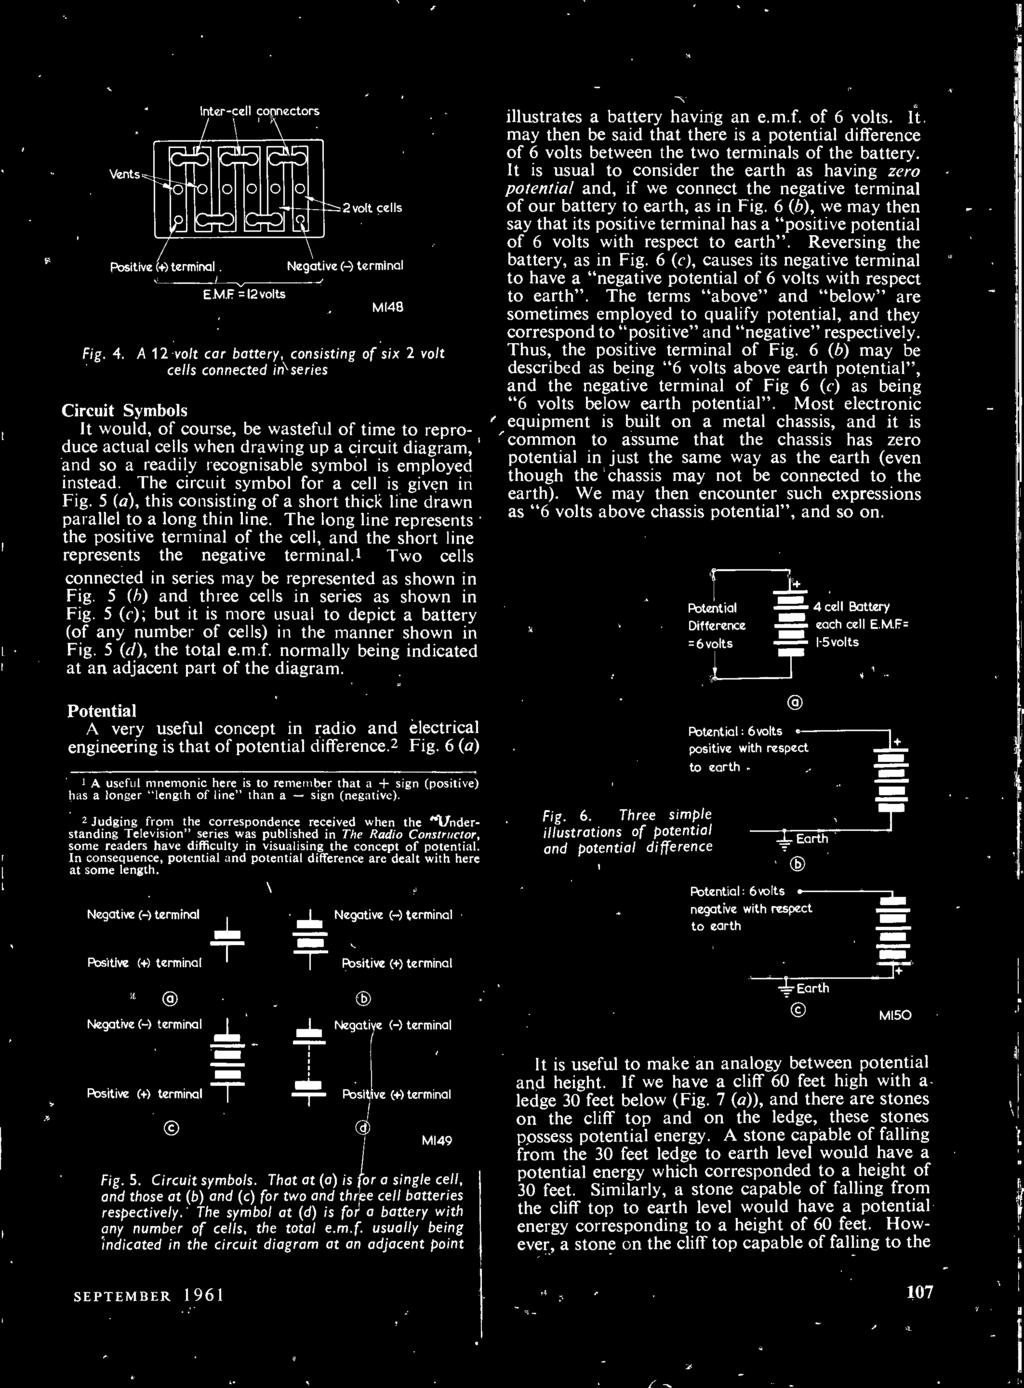 September Design Details Electronics Television Audio The Jr1 Figs 1and 2 Shows Transmitter And Receiver Circuit Respectivelythe 5 B Three Cells In Series As Shown Fig